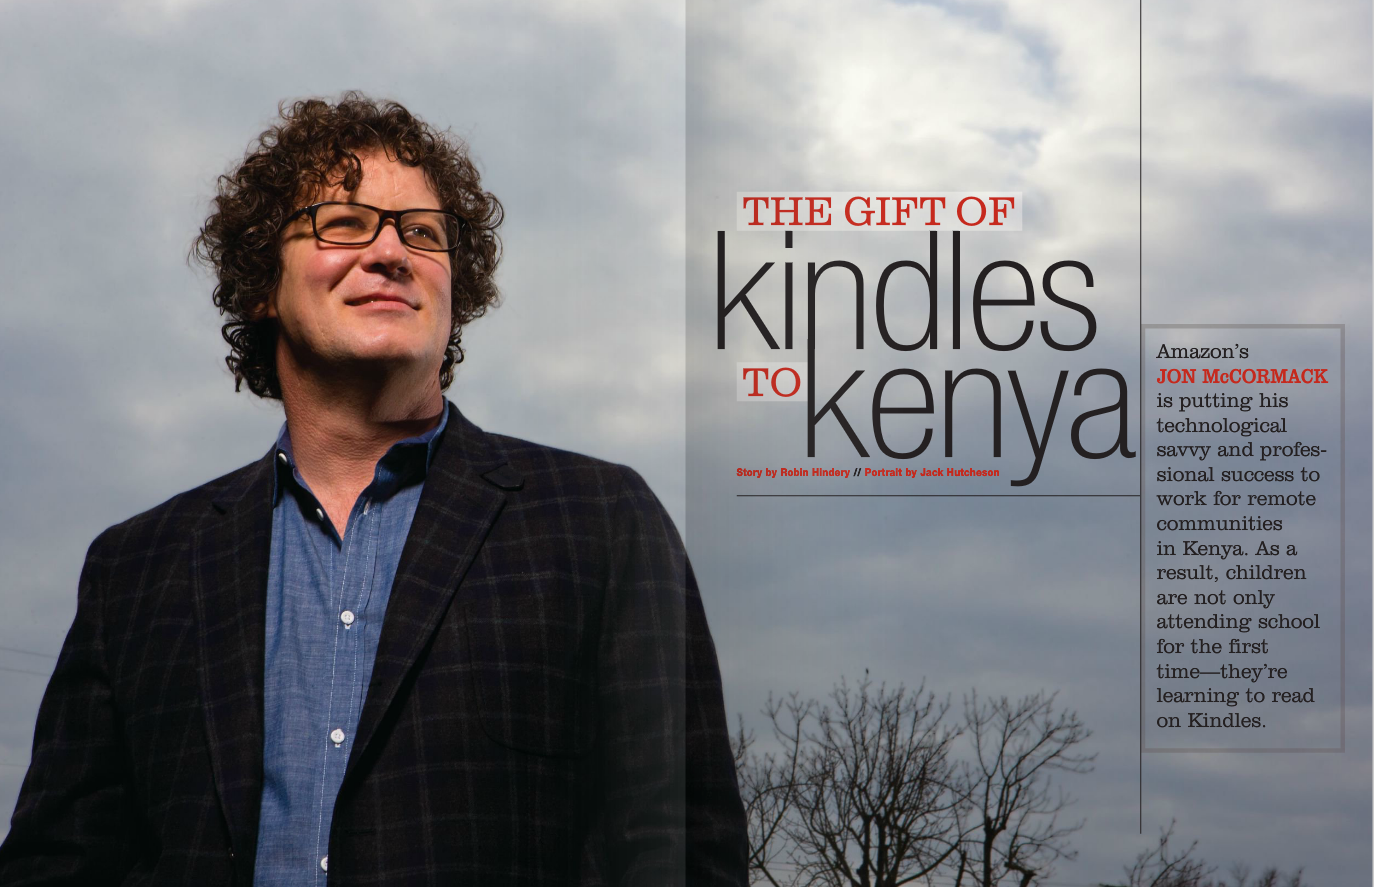 John McCormack and the gift of Kindles to Kenya #amazon